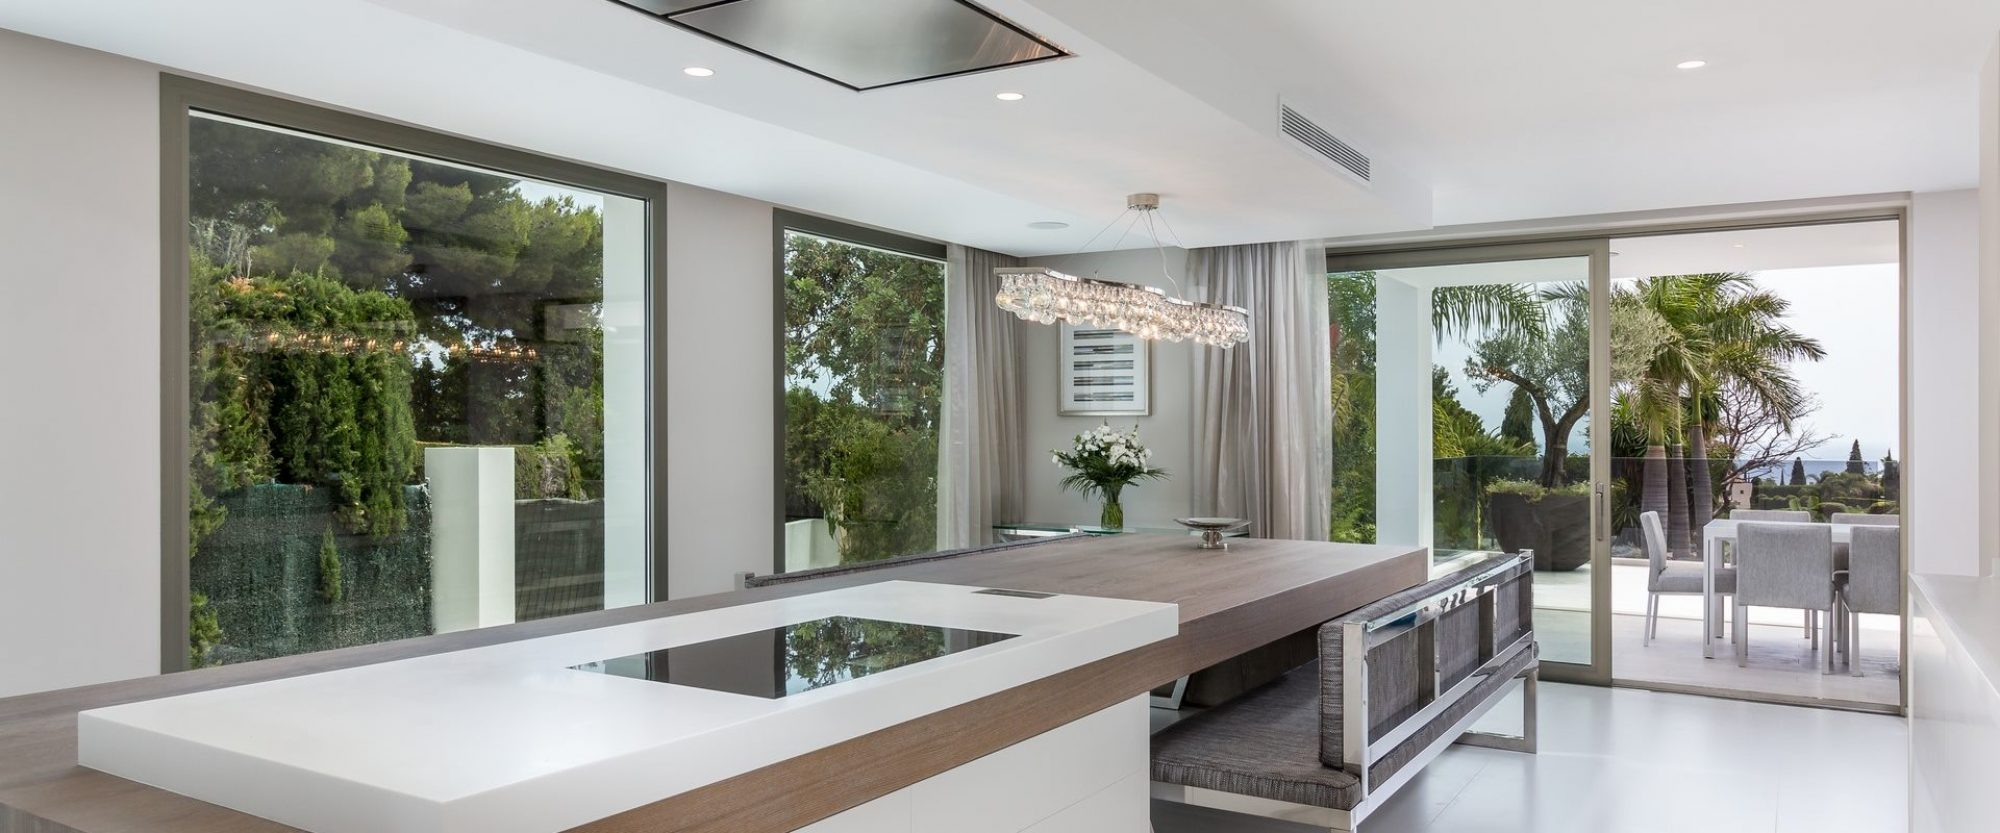 marbella's 1st solid krion and gaggenhau professional kitchen with 5.5m oak family table